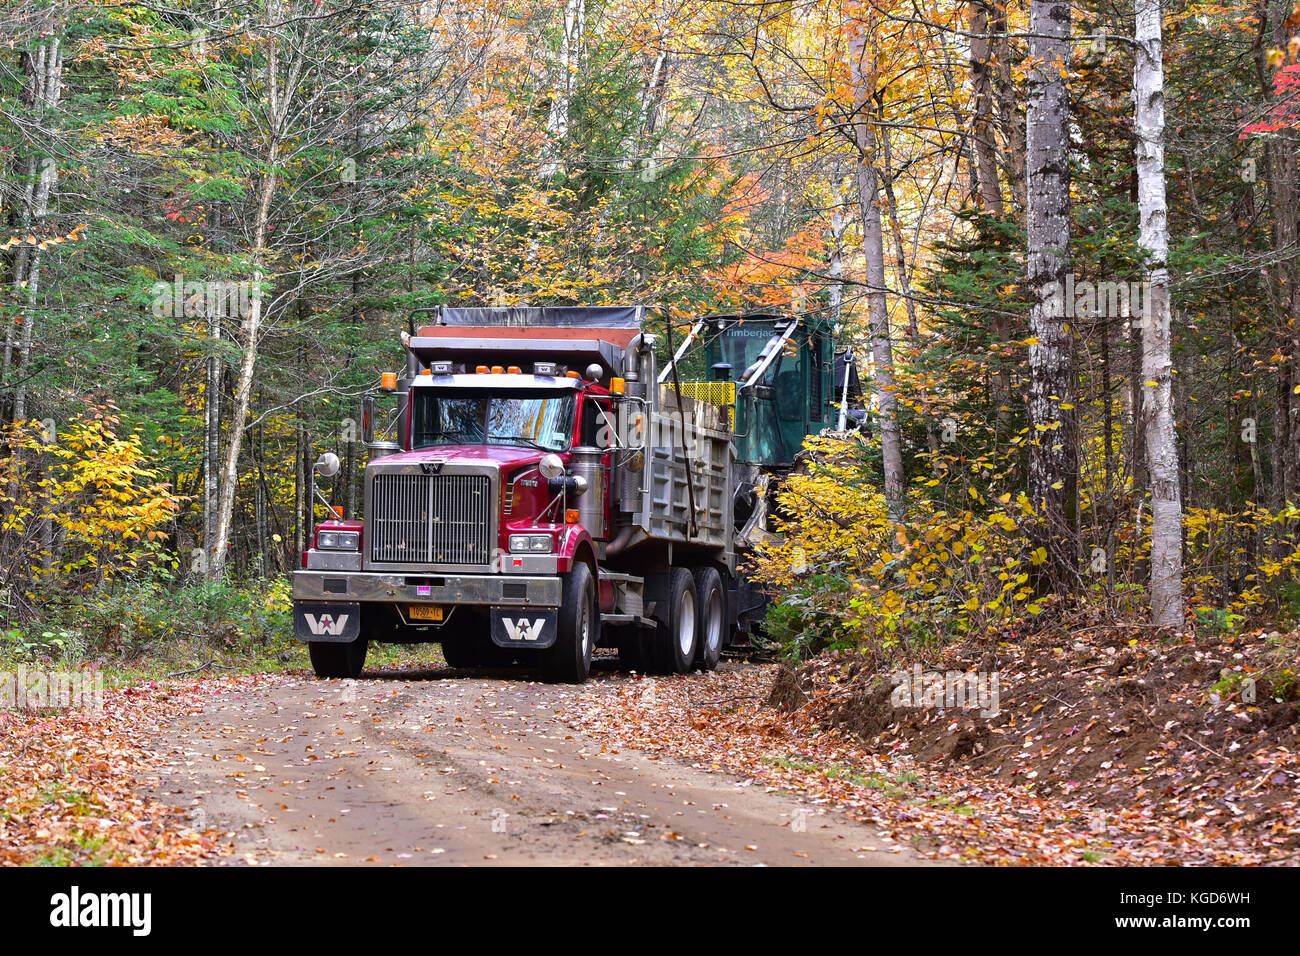 western-star-dump-truck-hauling-a-log-skidder-on-a-logging-road-through-KGD6WH.jpg